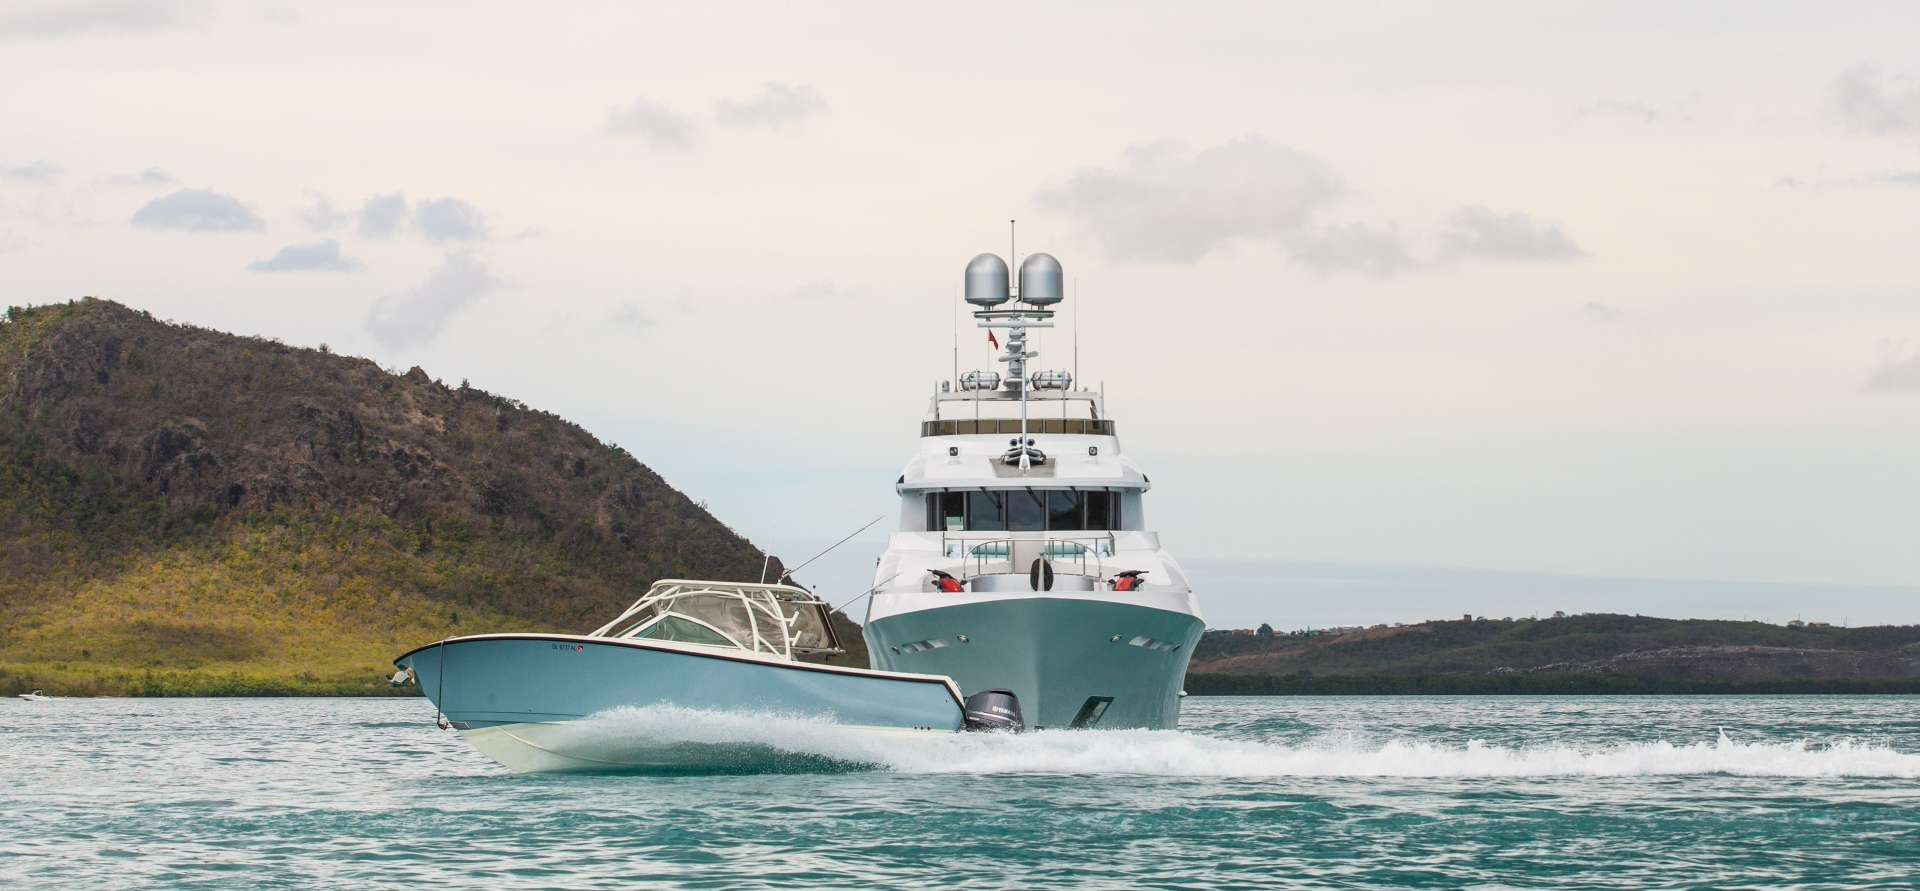 Image of Just Enough yacht #18